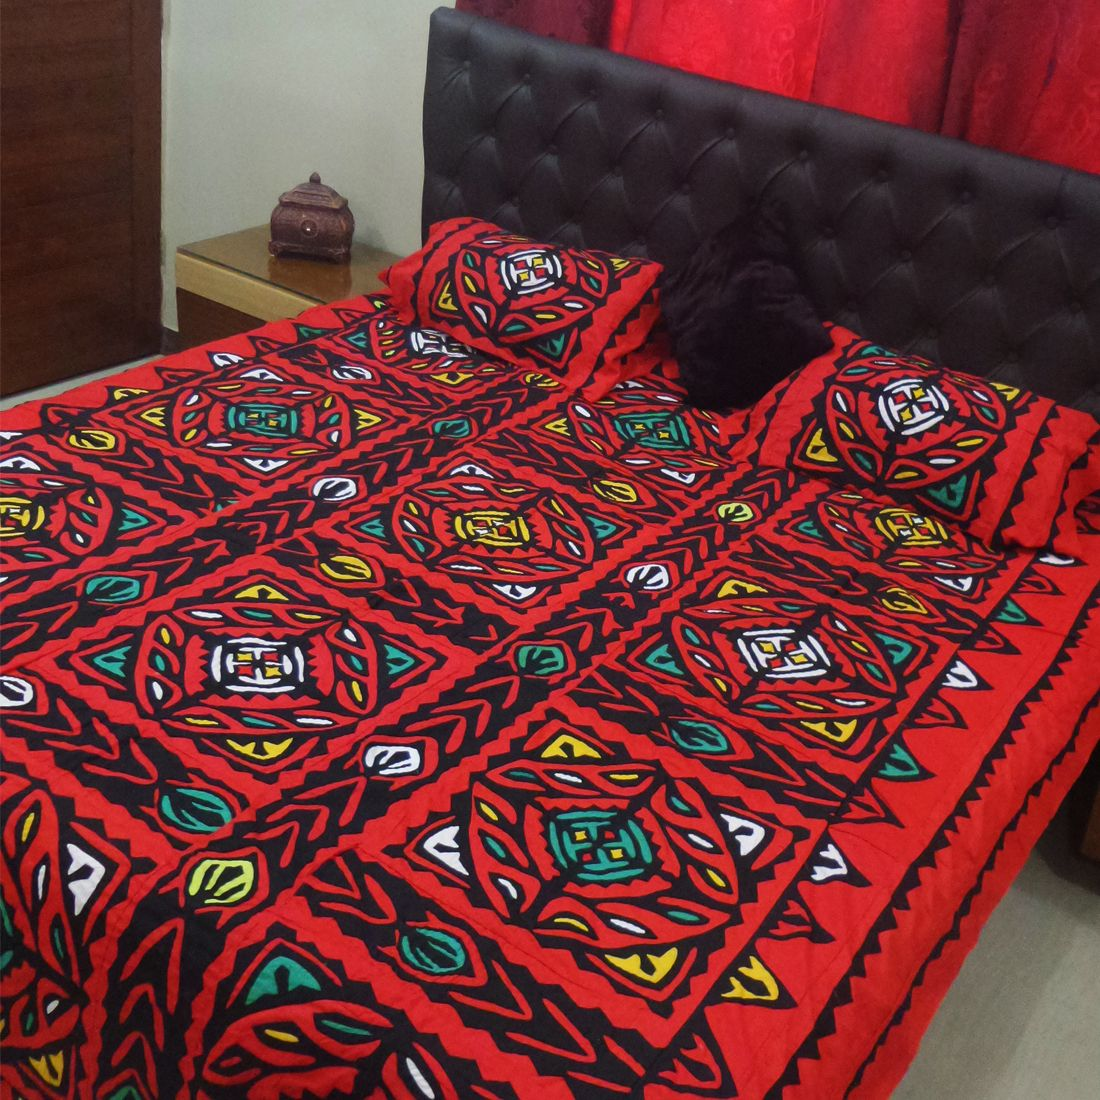 Handmade bed sheets design - Aman Jee Sindhi Cultural Handmade Aplic Ralli Bed Sheet Now Available Www Pehnlo